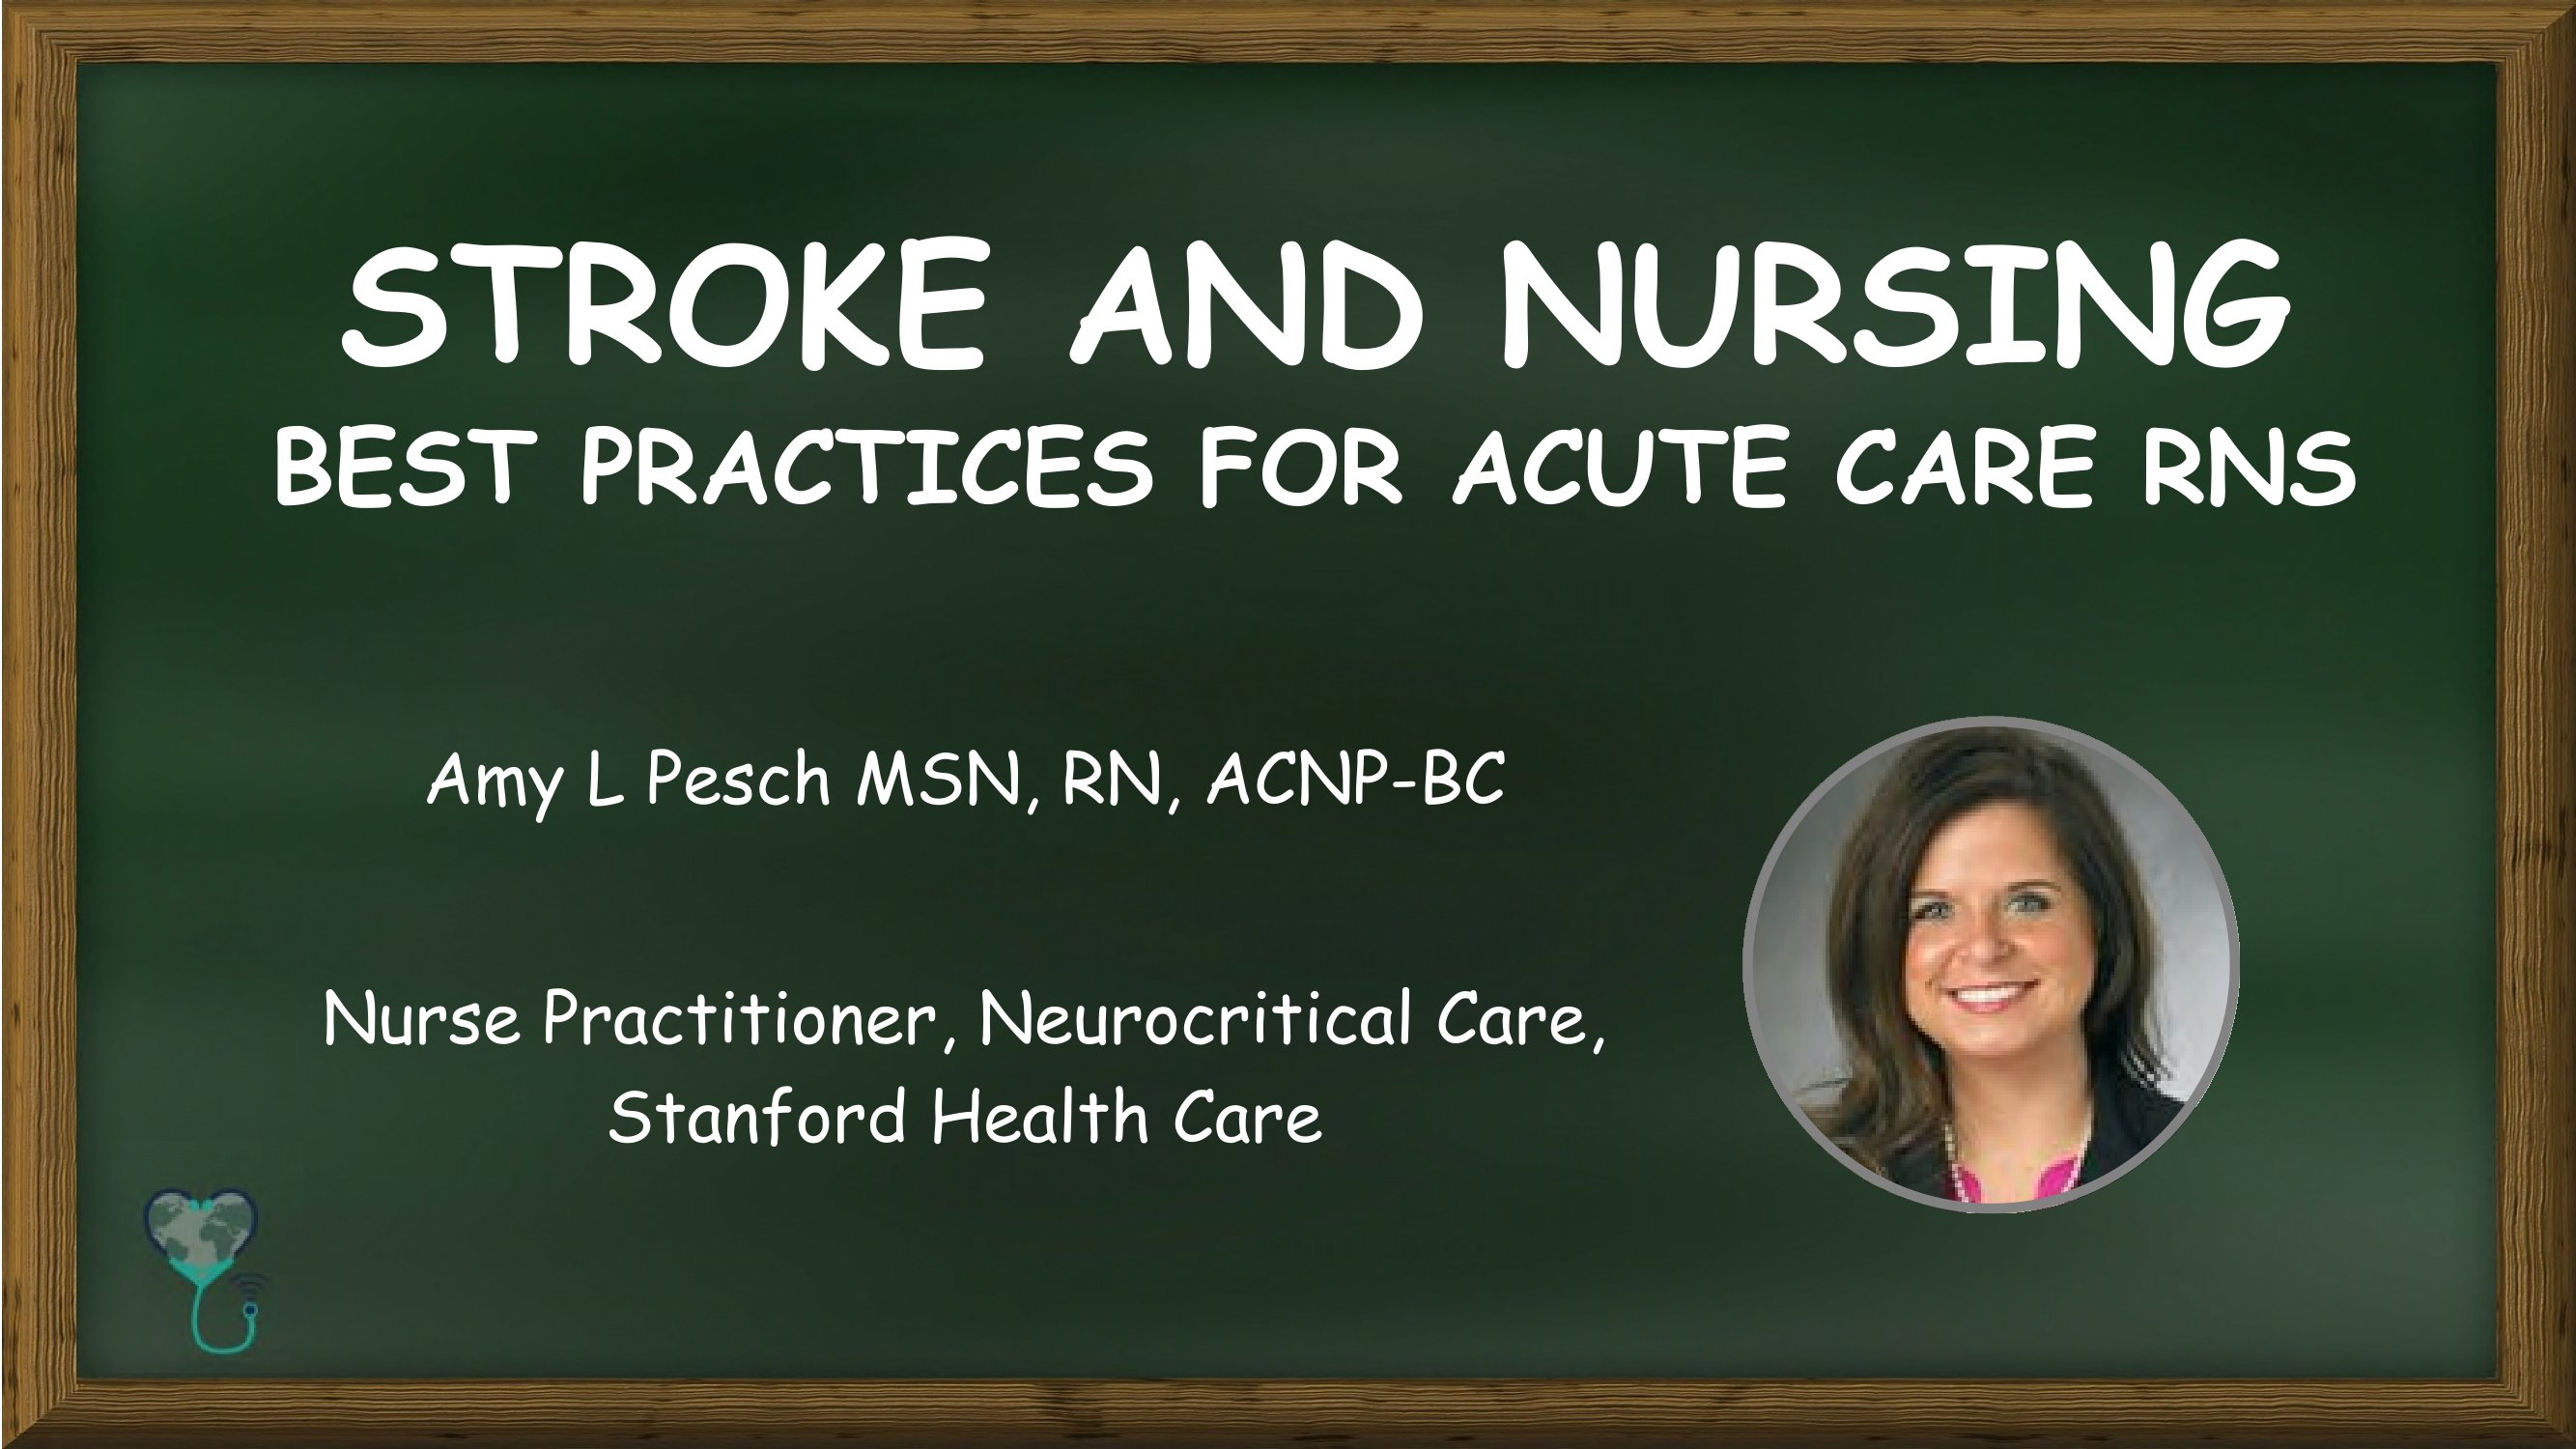 Stroke And Nursing Best Practices for Acute Care RNs